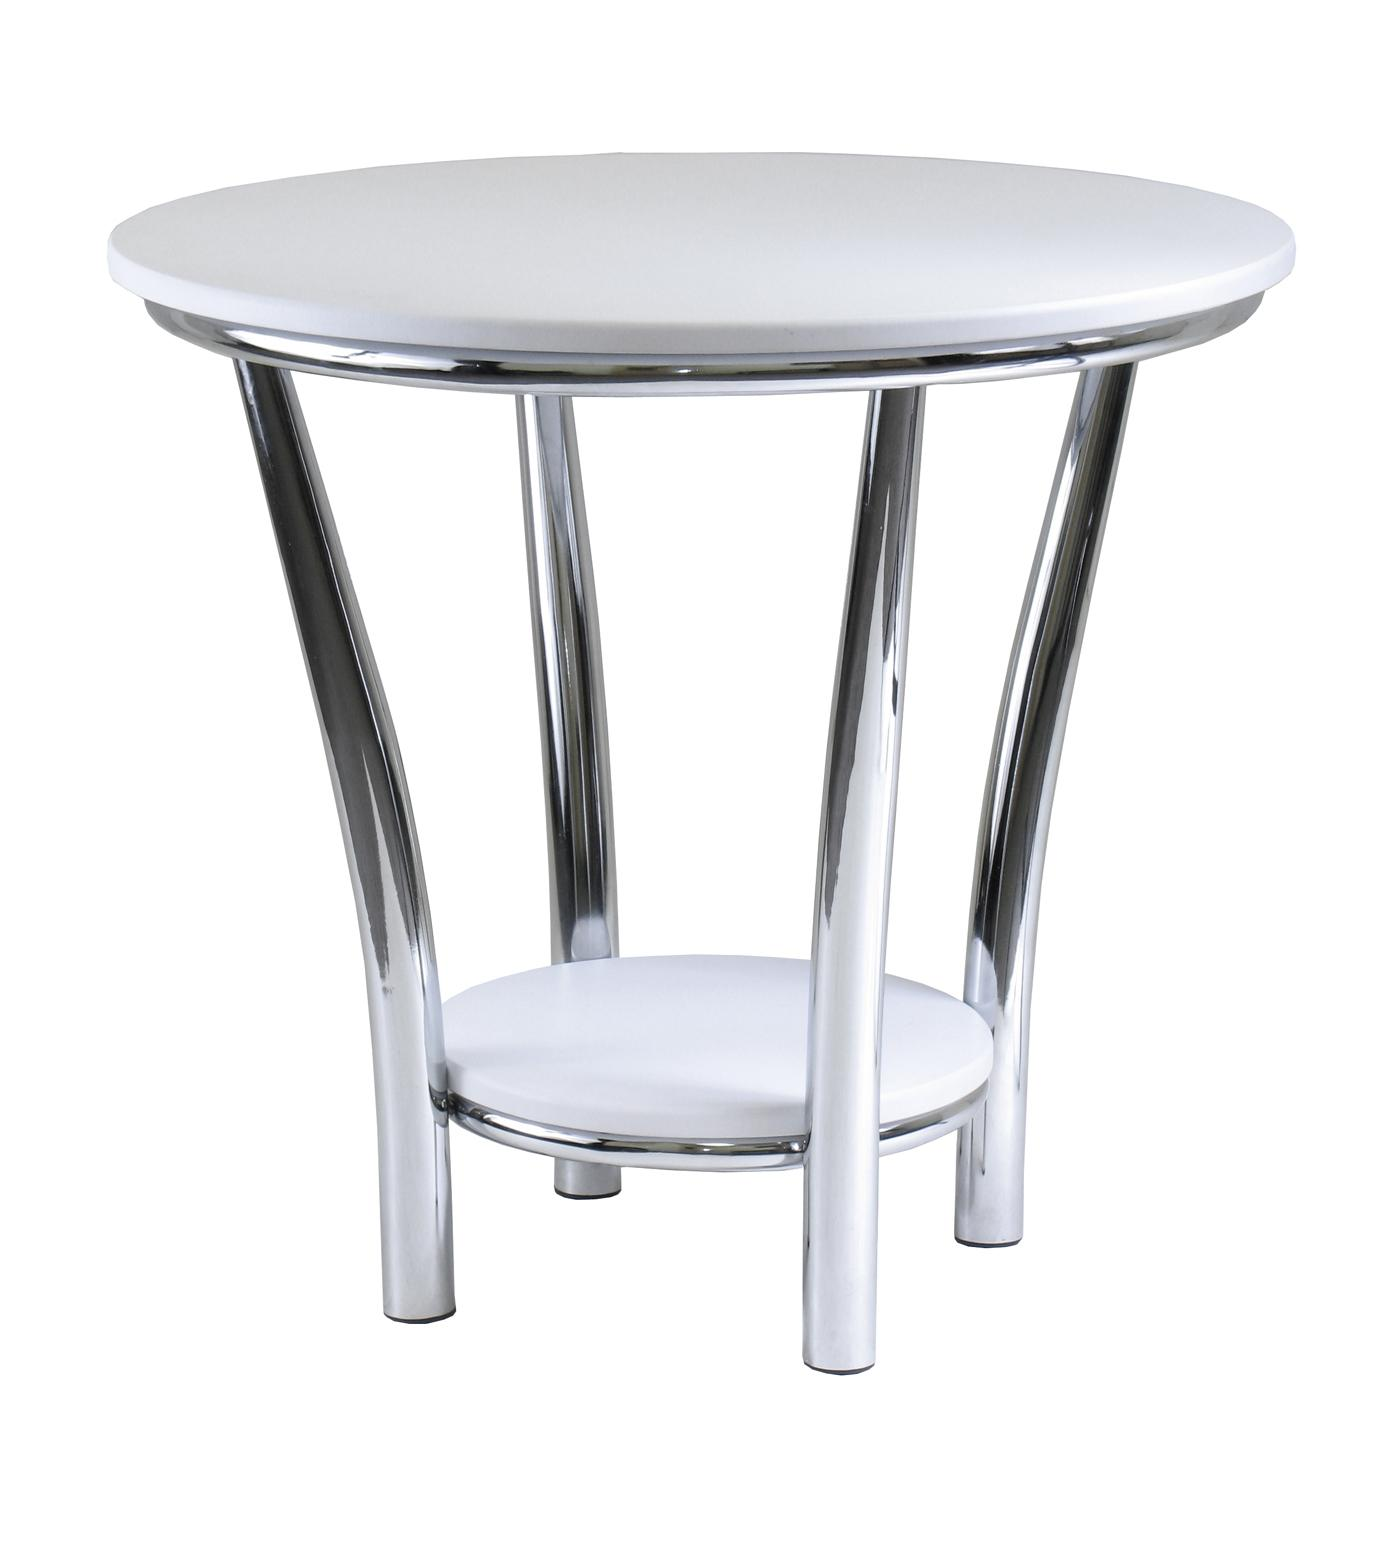 winsome wood round end table white top metal leg black legs tap expand outdoor coffee clearance aiden glass homesense kelowna middle liberty house and chairs leons peterborough